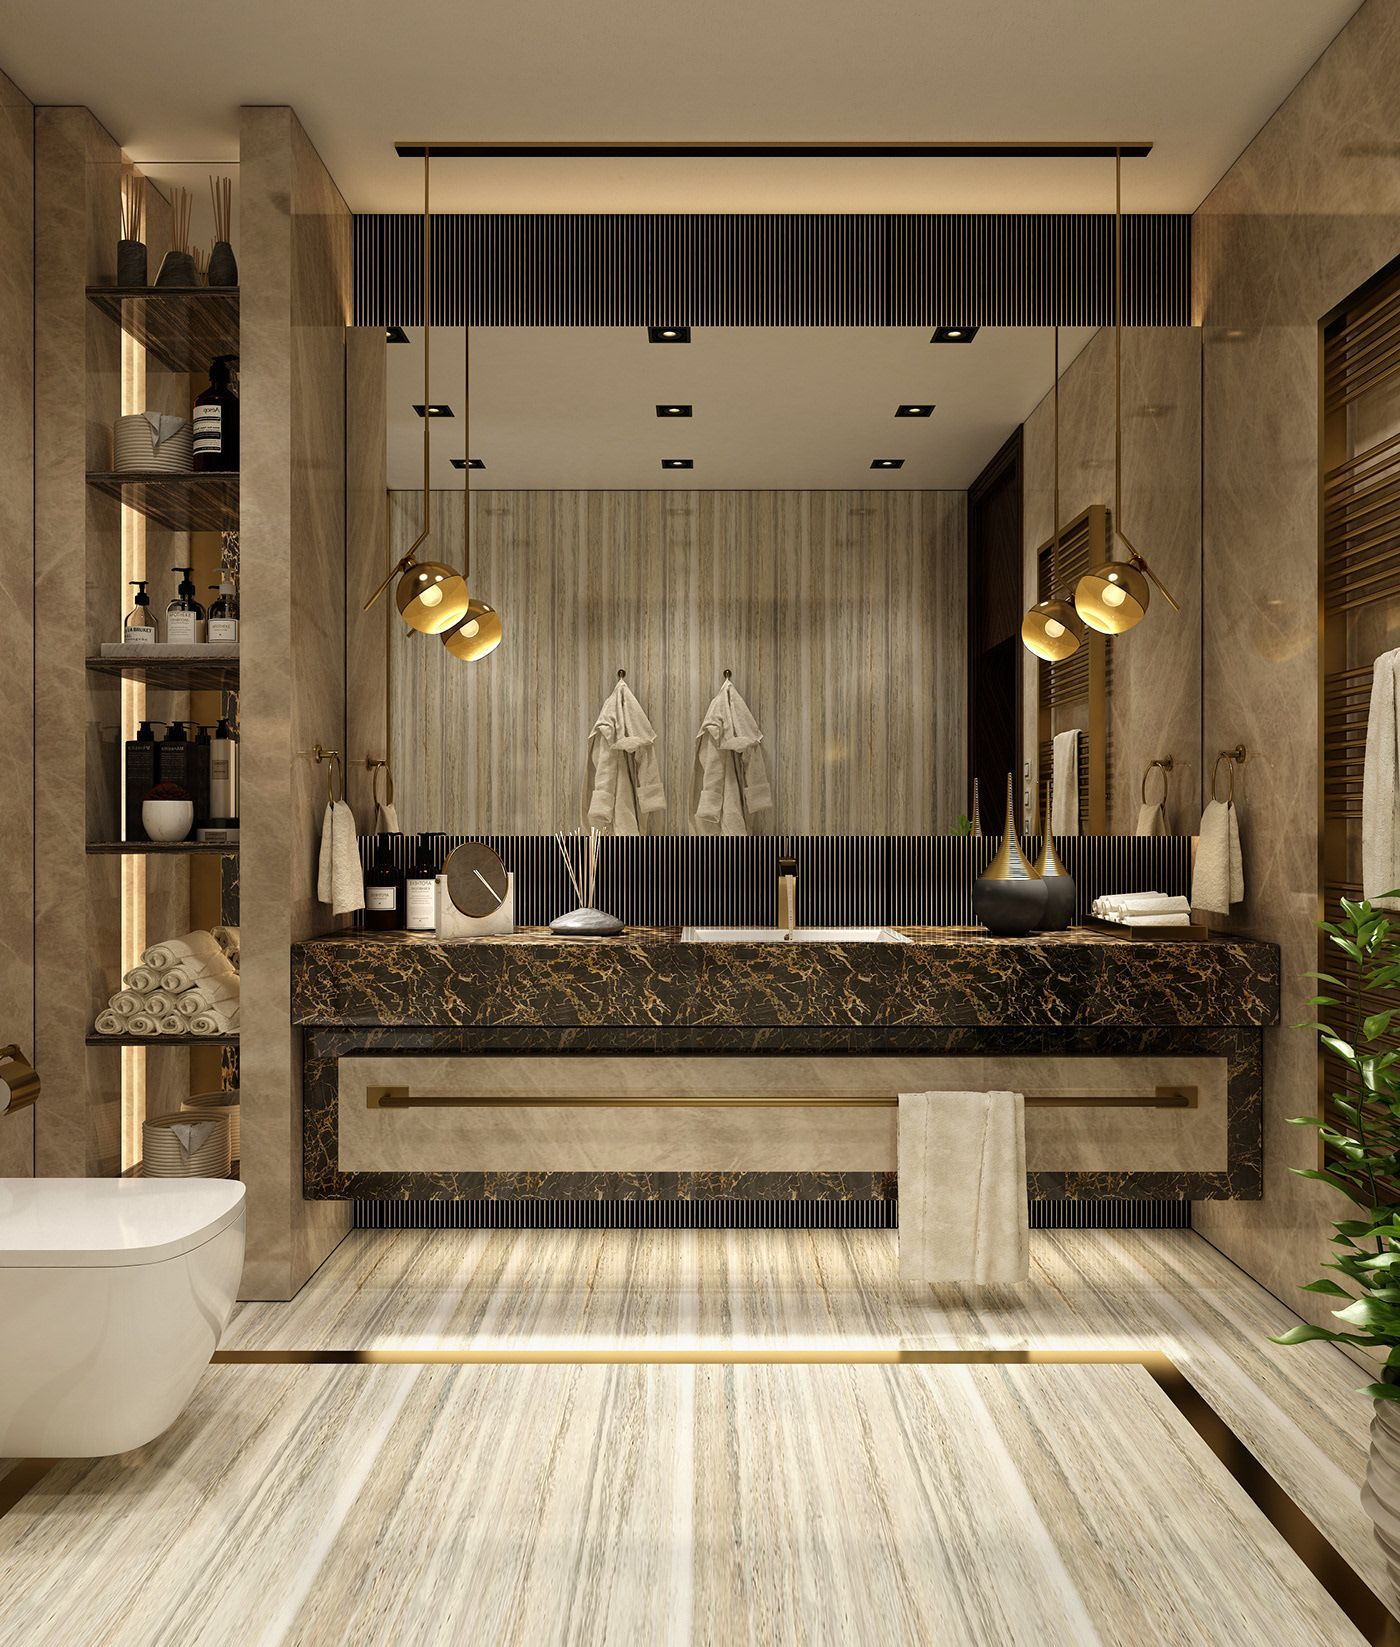 Home Design Ideas Bathroom: Bathroom Inspiration Modern